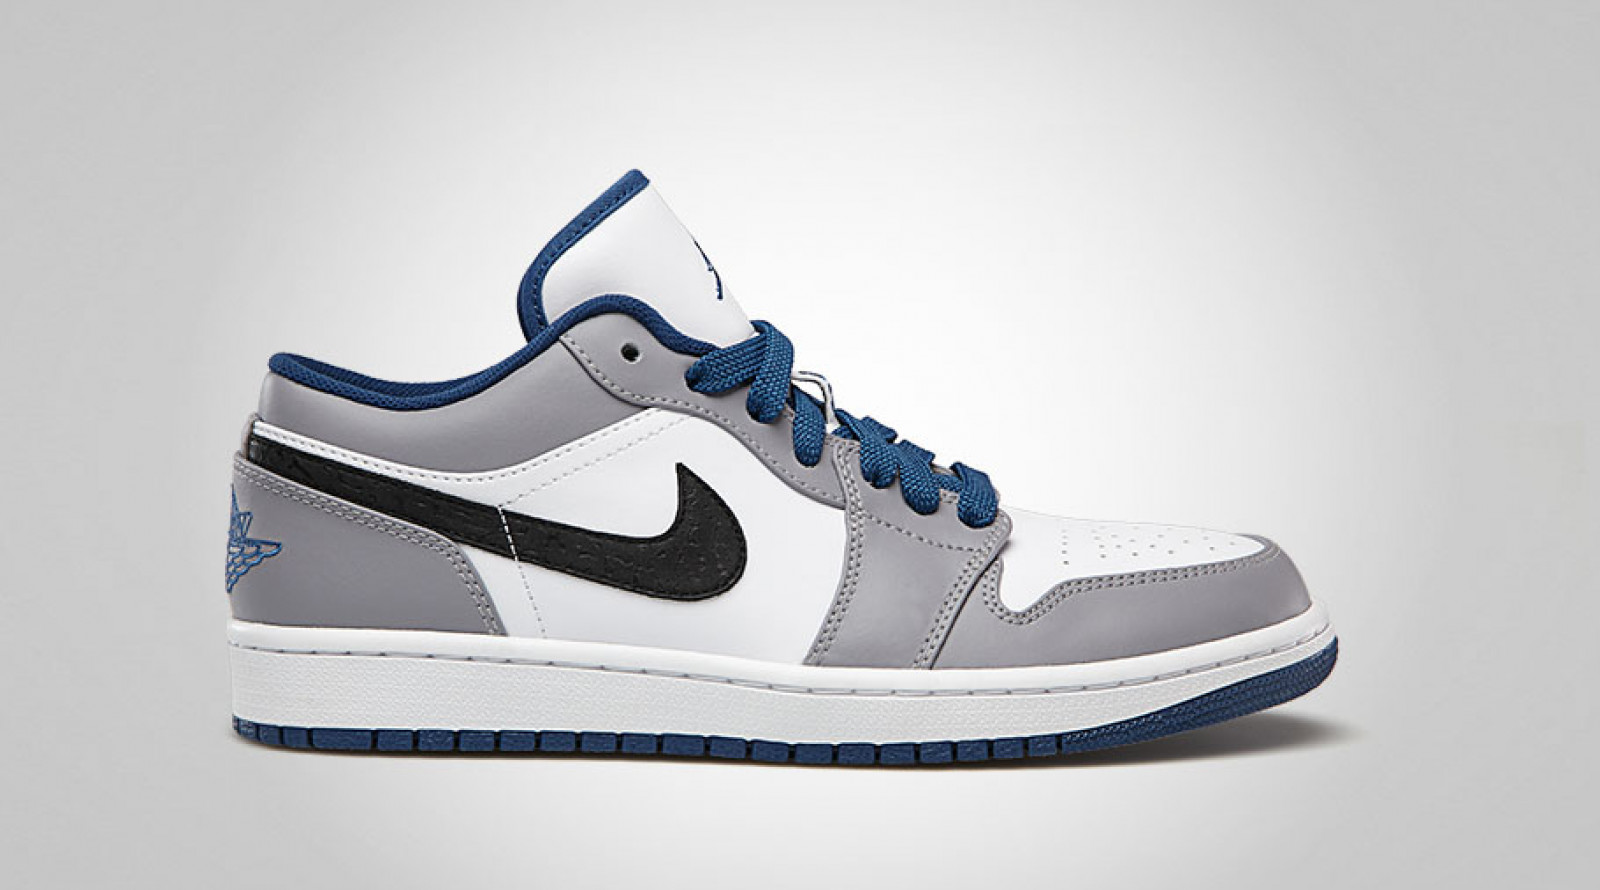 a583a0eeb1f5d7 The original Air Jordan 1 Low was cool. The version that comes out today   Not so much. The redesigned heel and collar make us wish for a true retro  of the ...